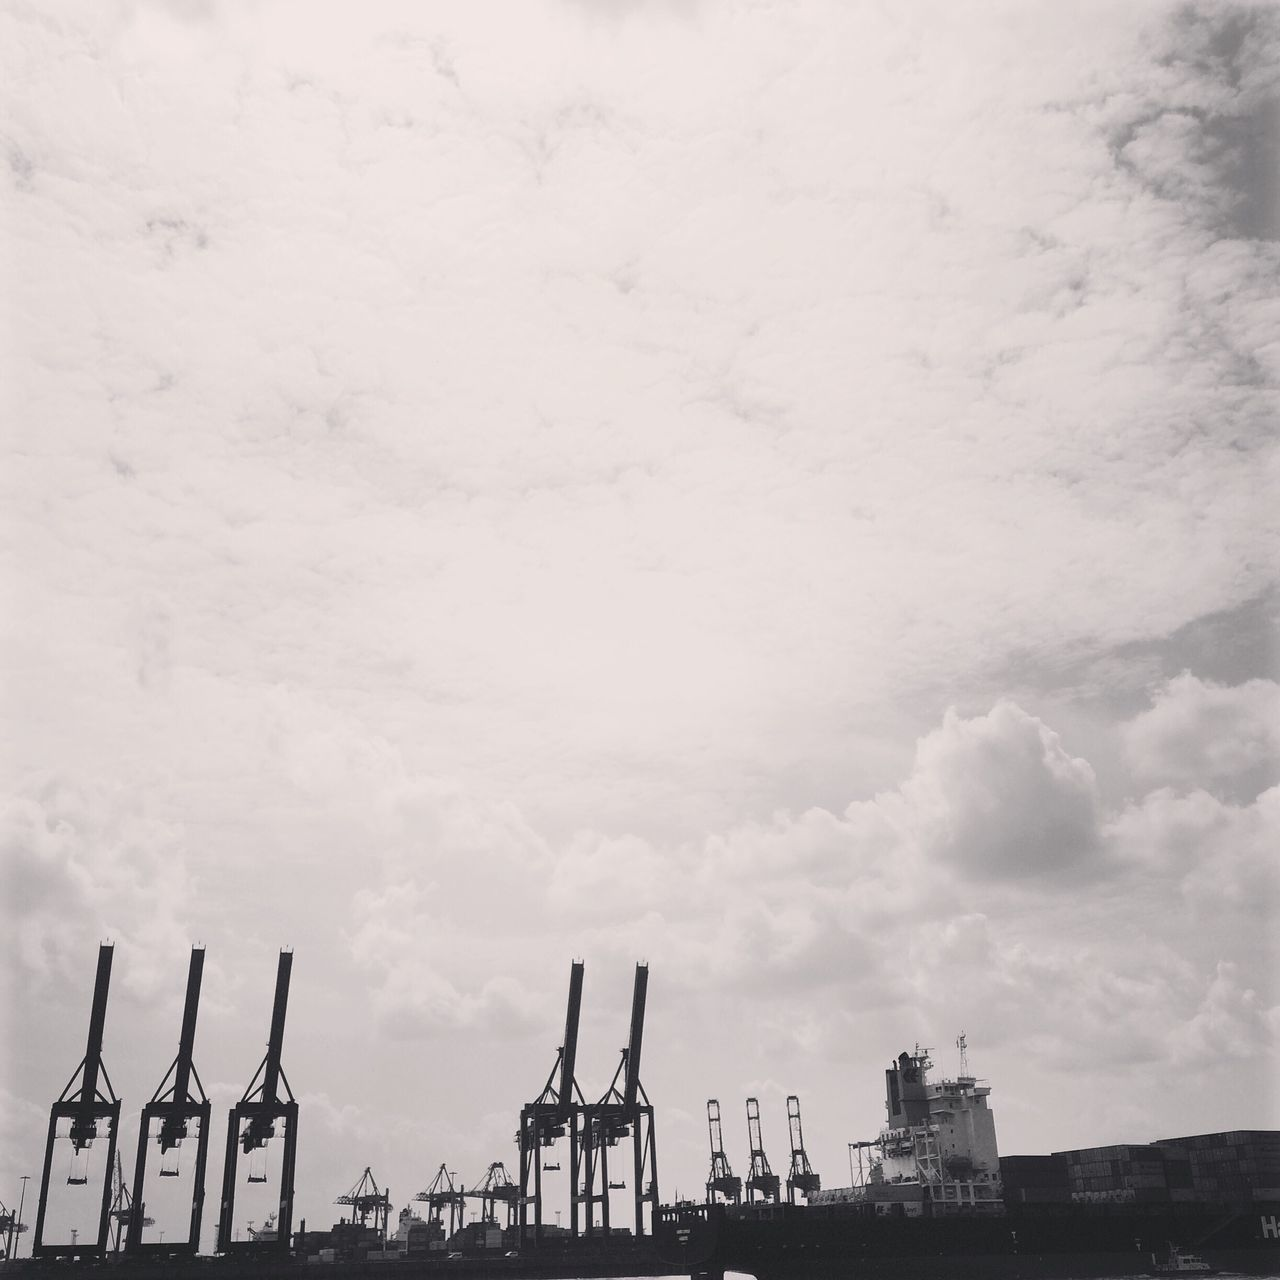 cloud - sky, sky, built structure, no people, architecture, day, outdoors, building exterior, nature, shipyard